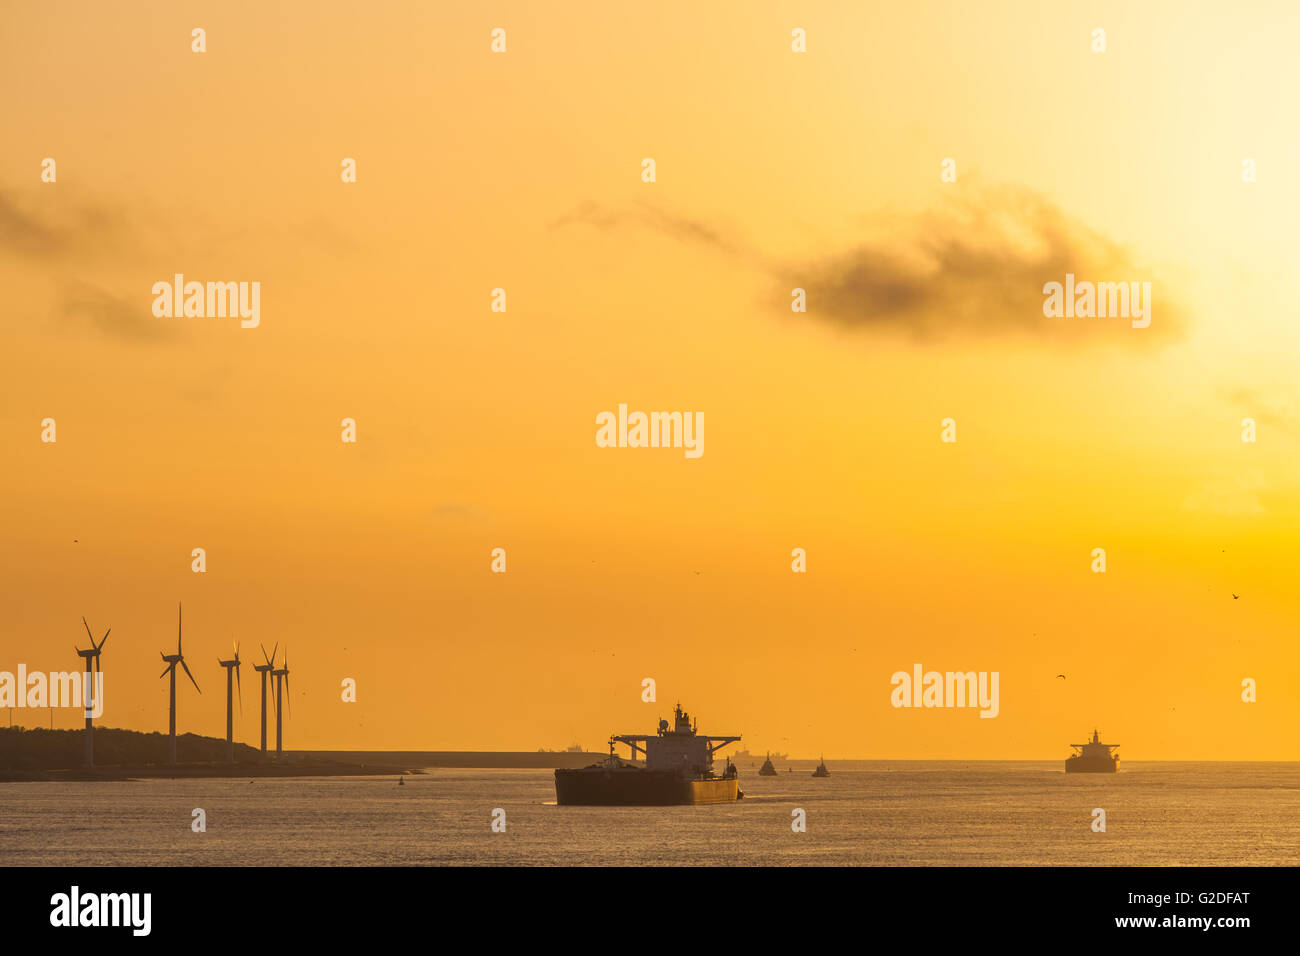 Two loaded crude oil tankers entering Port of Rotterdam Netherlands contrasting with windpark turbines green power Stock Photo